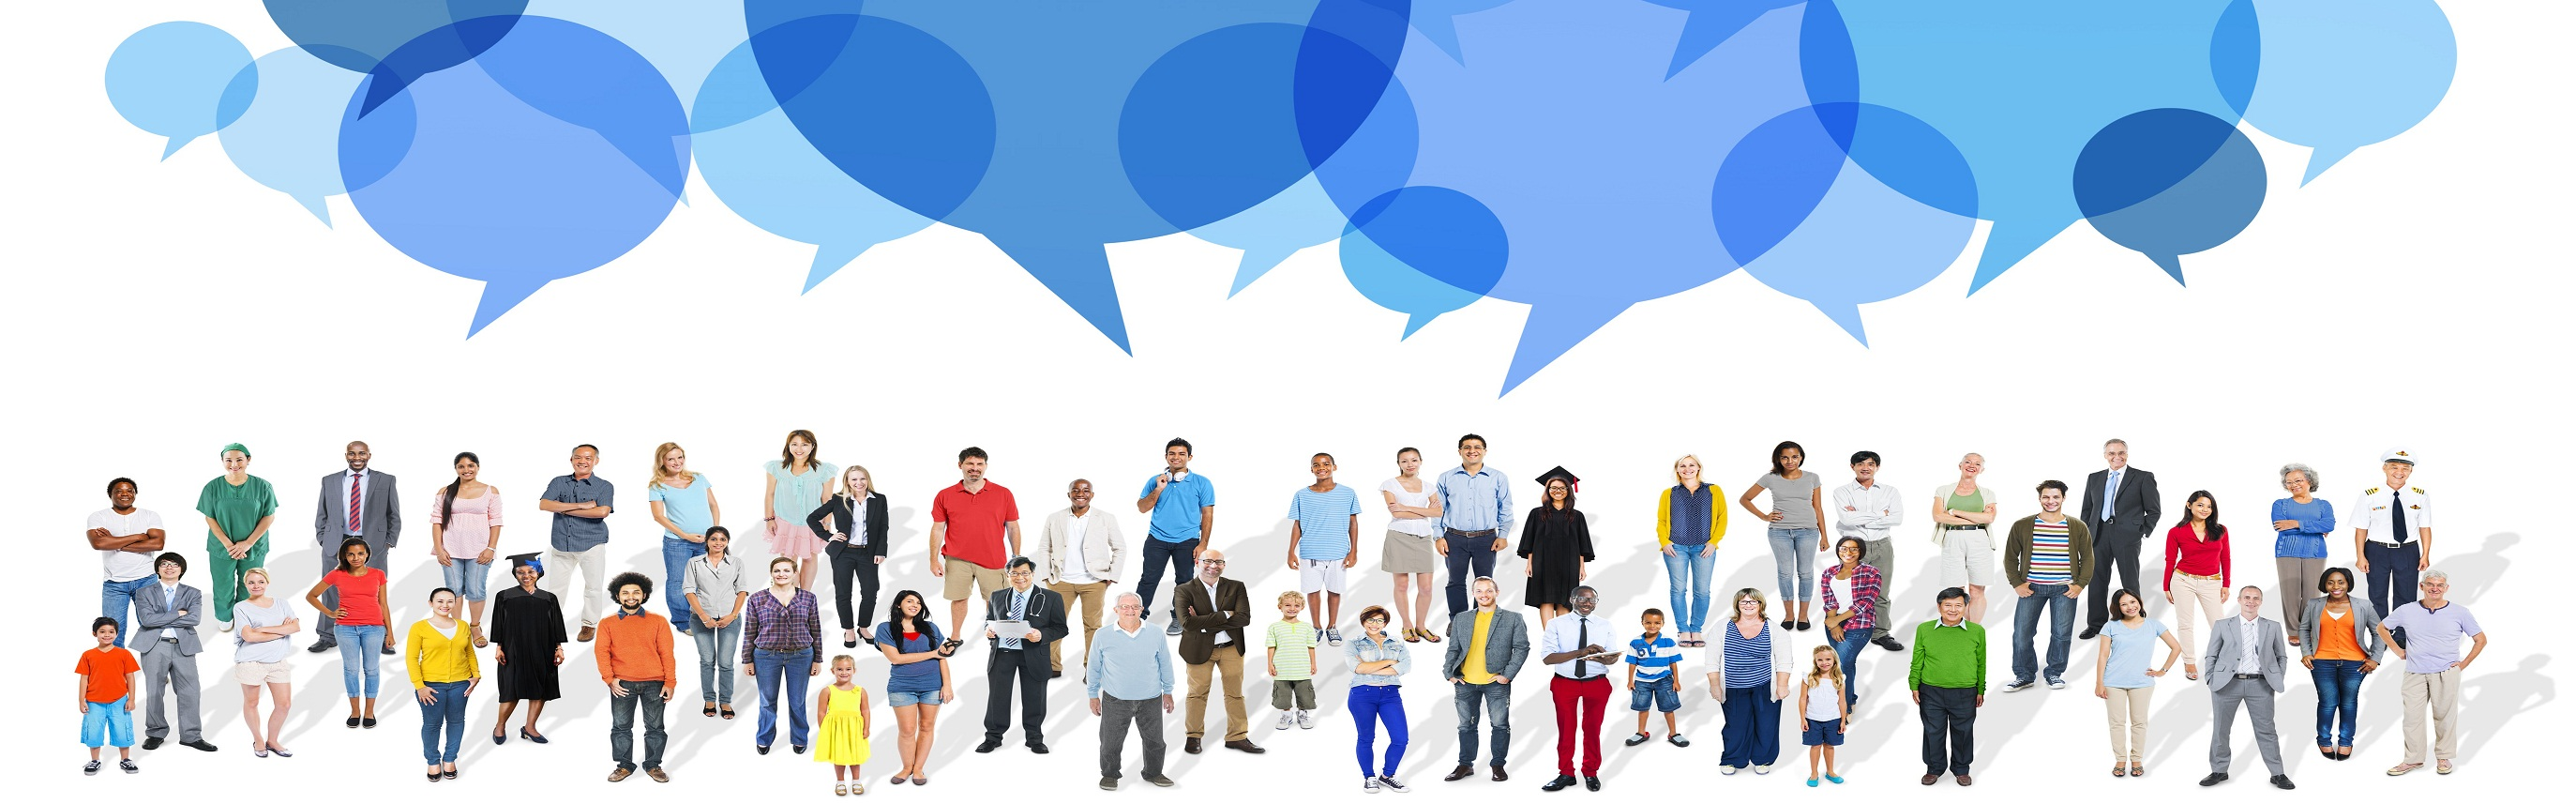 Large Group of People with Speech Bubbles